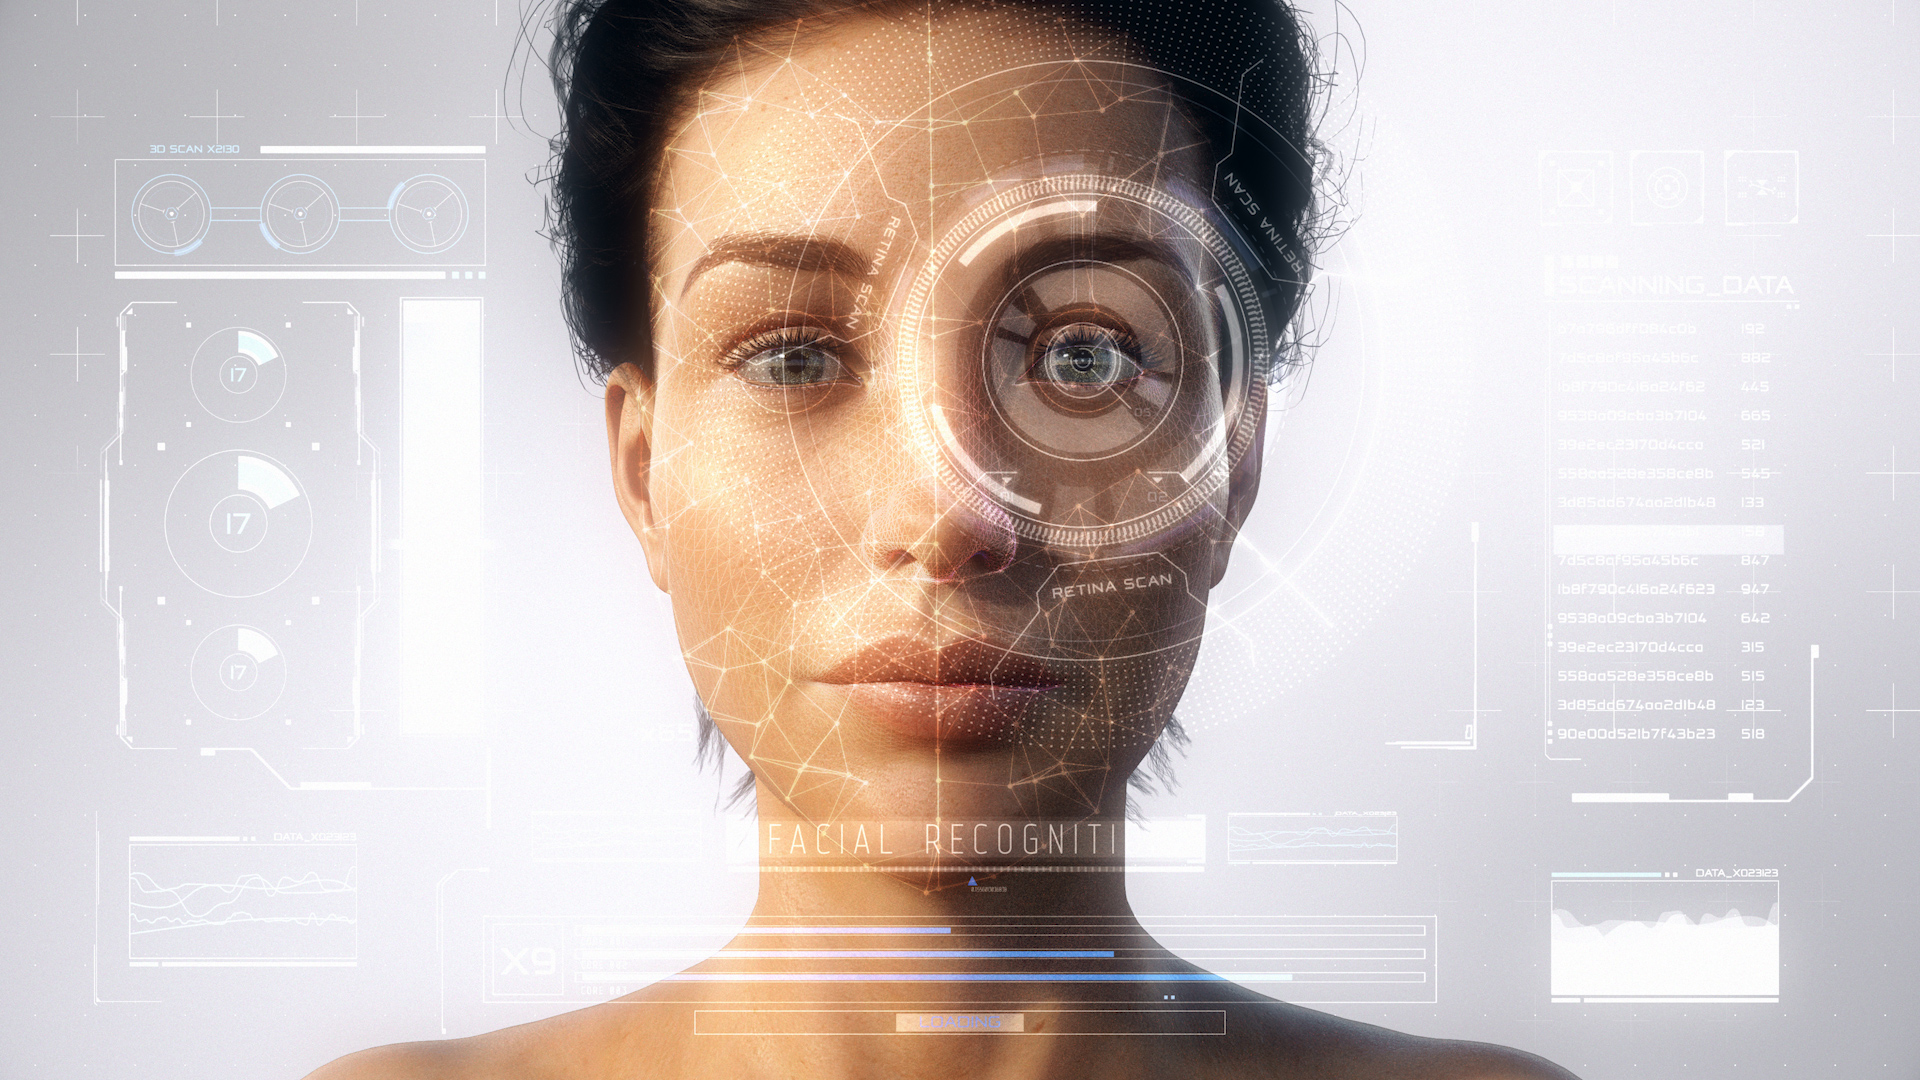 Futuristic and technological scanning of the face and retina